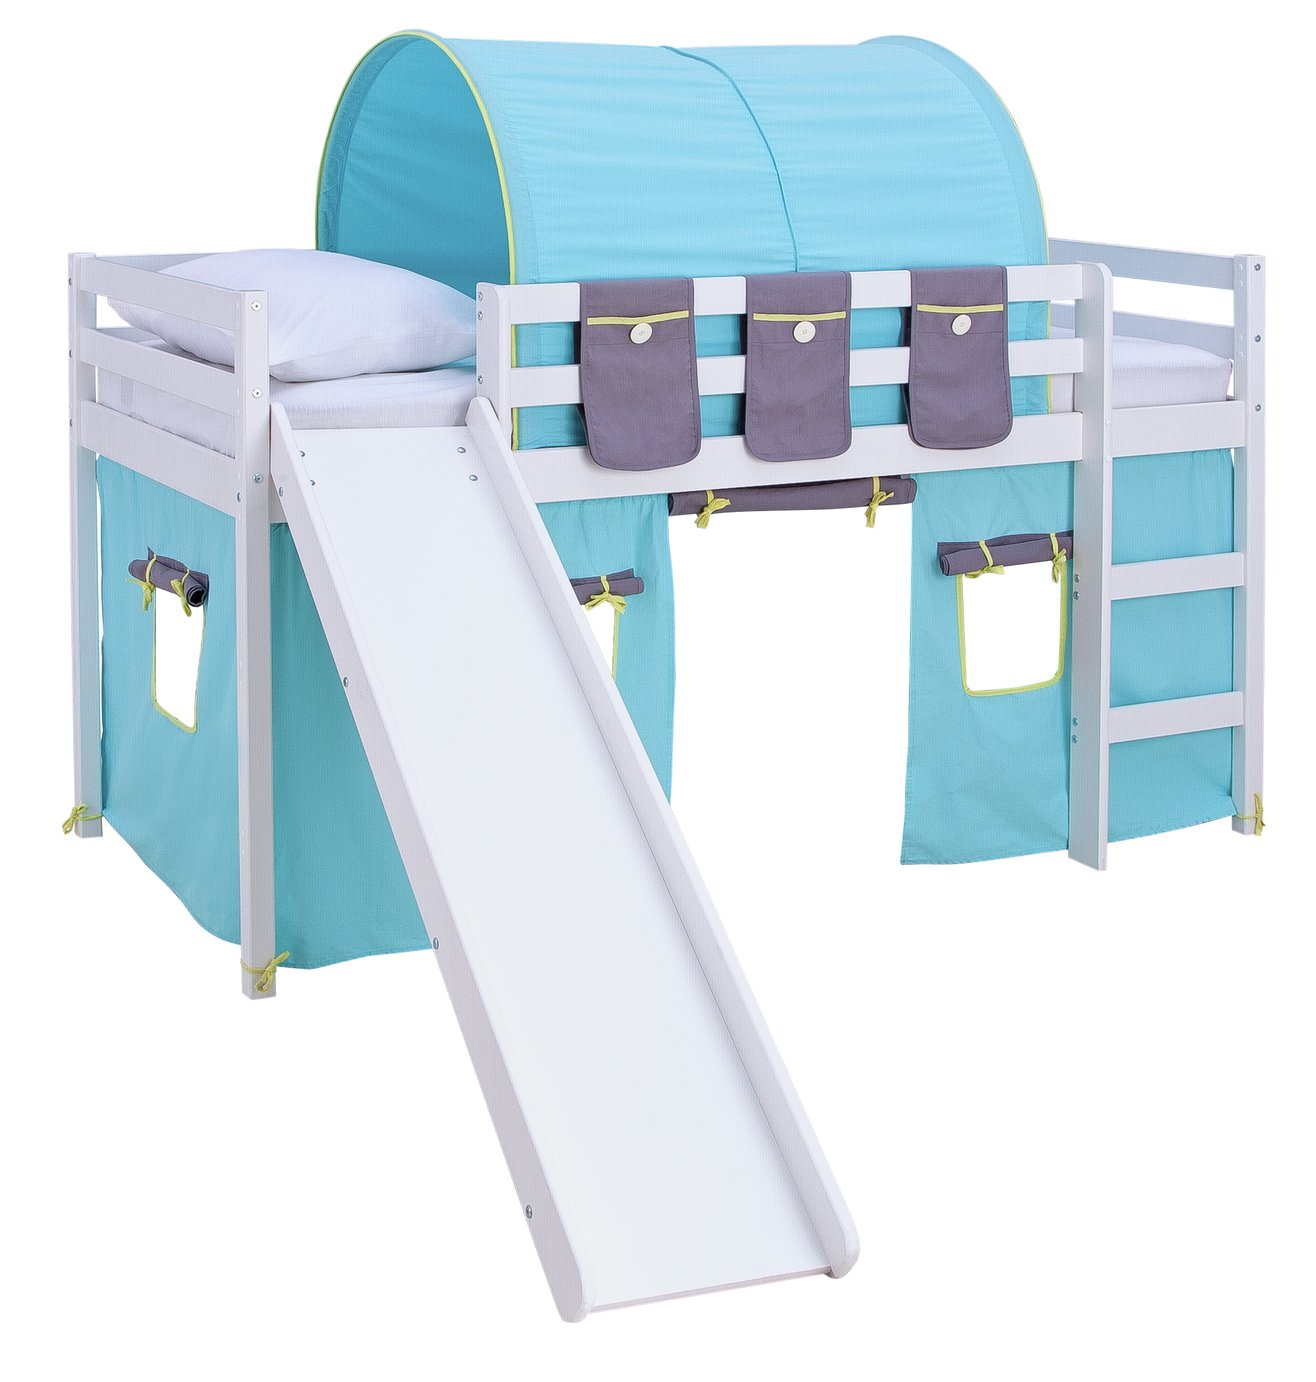 Argos Home Kaycie White Mid Sleeper with Slide & Blue Tent